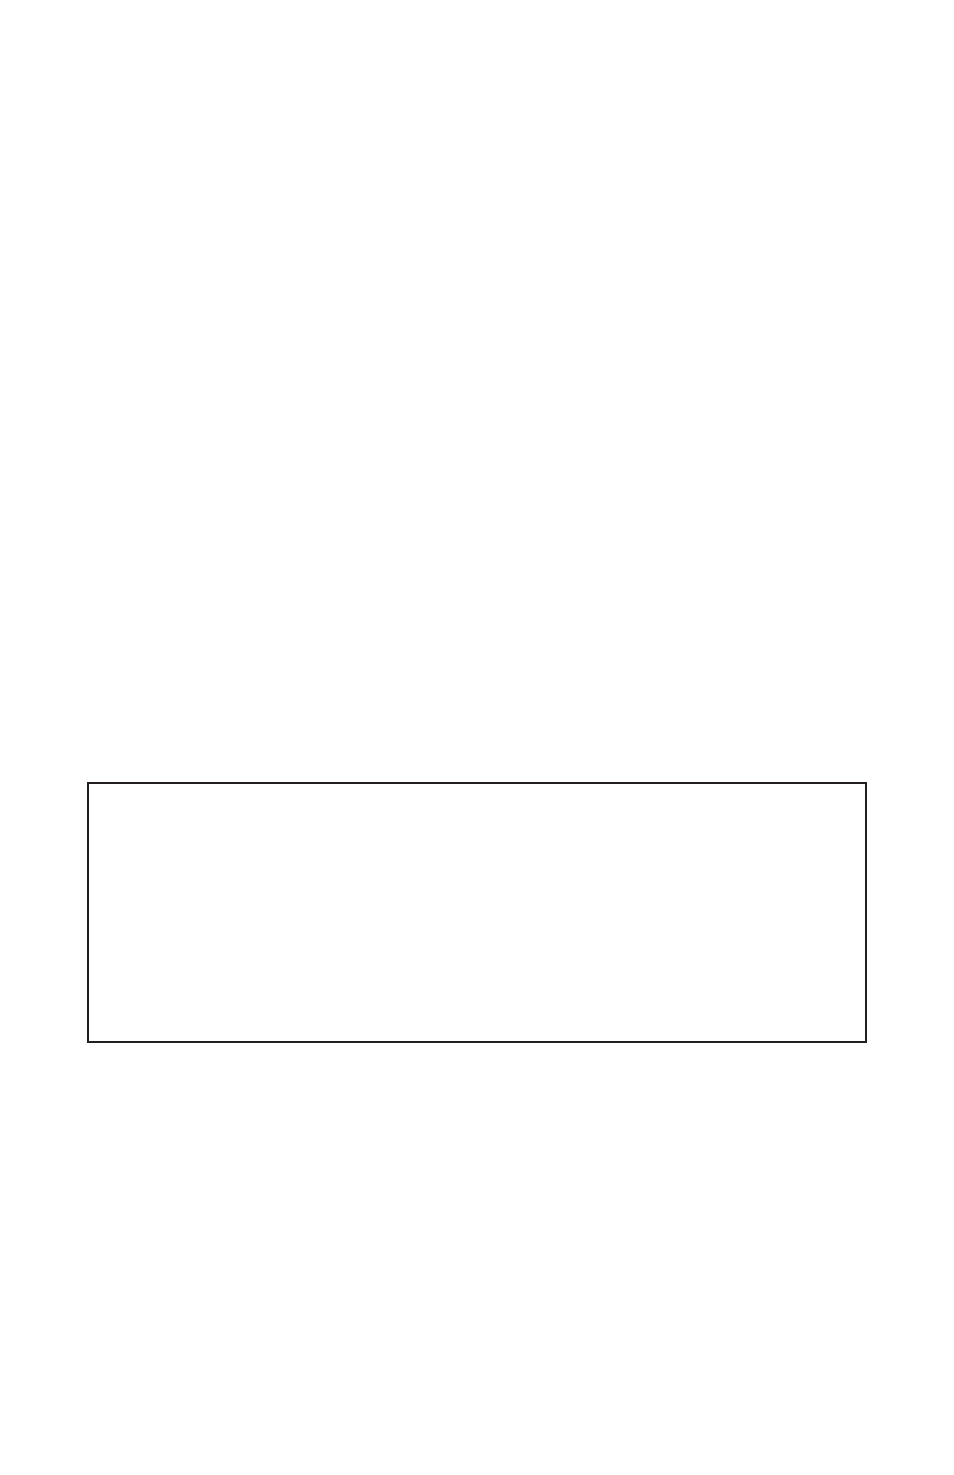 Care and maintenance, Hydrostatic transmission oil and filter